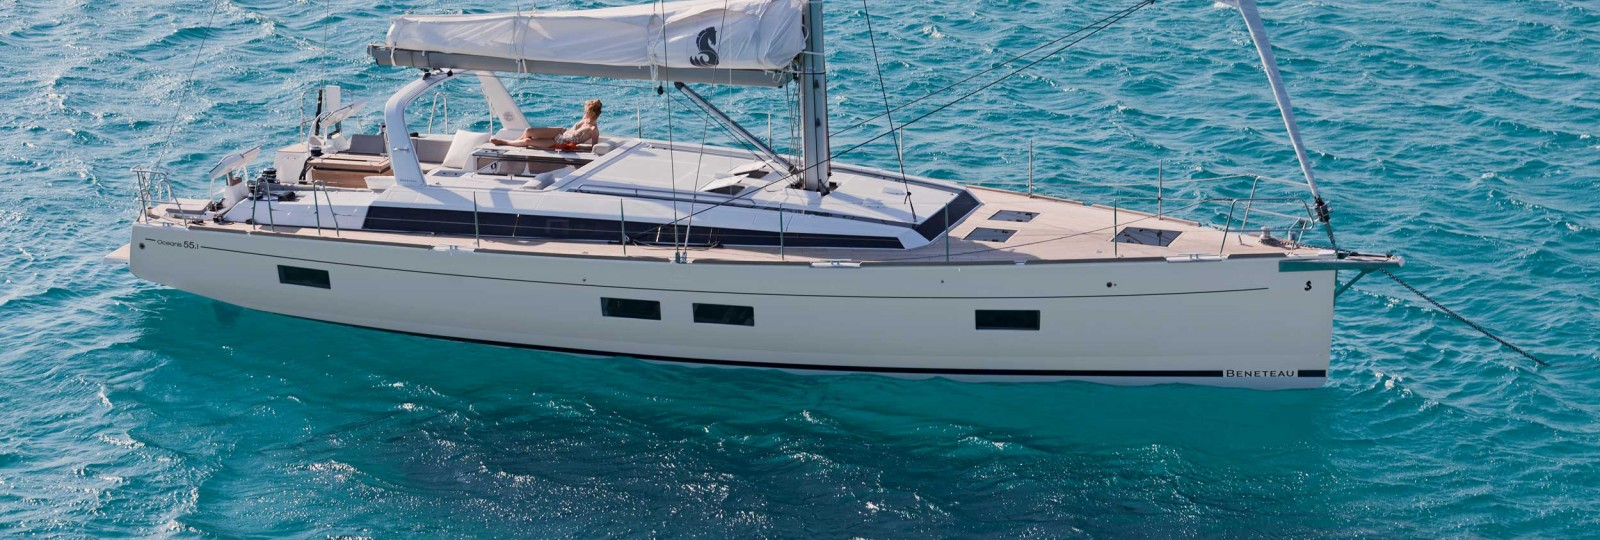 Beneteau Oceanis 55.1 at anchor